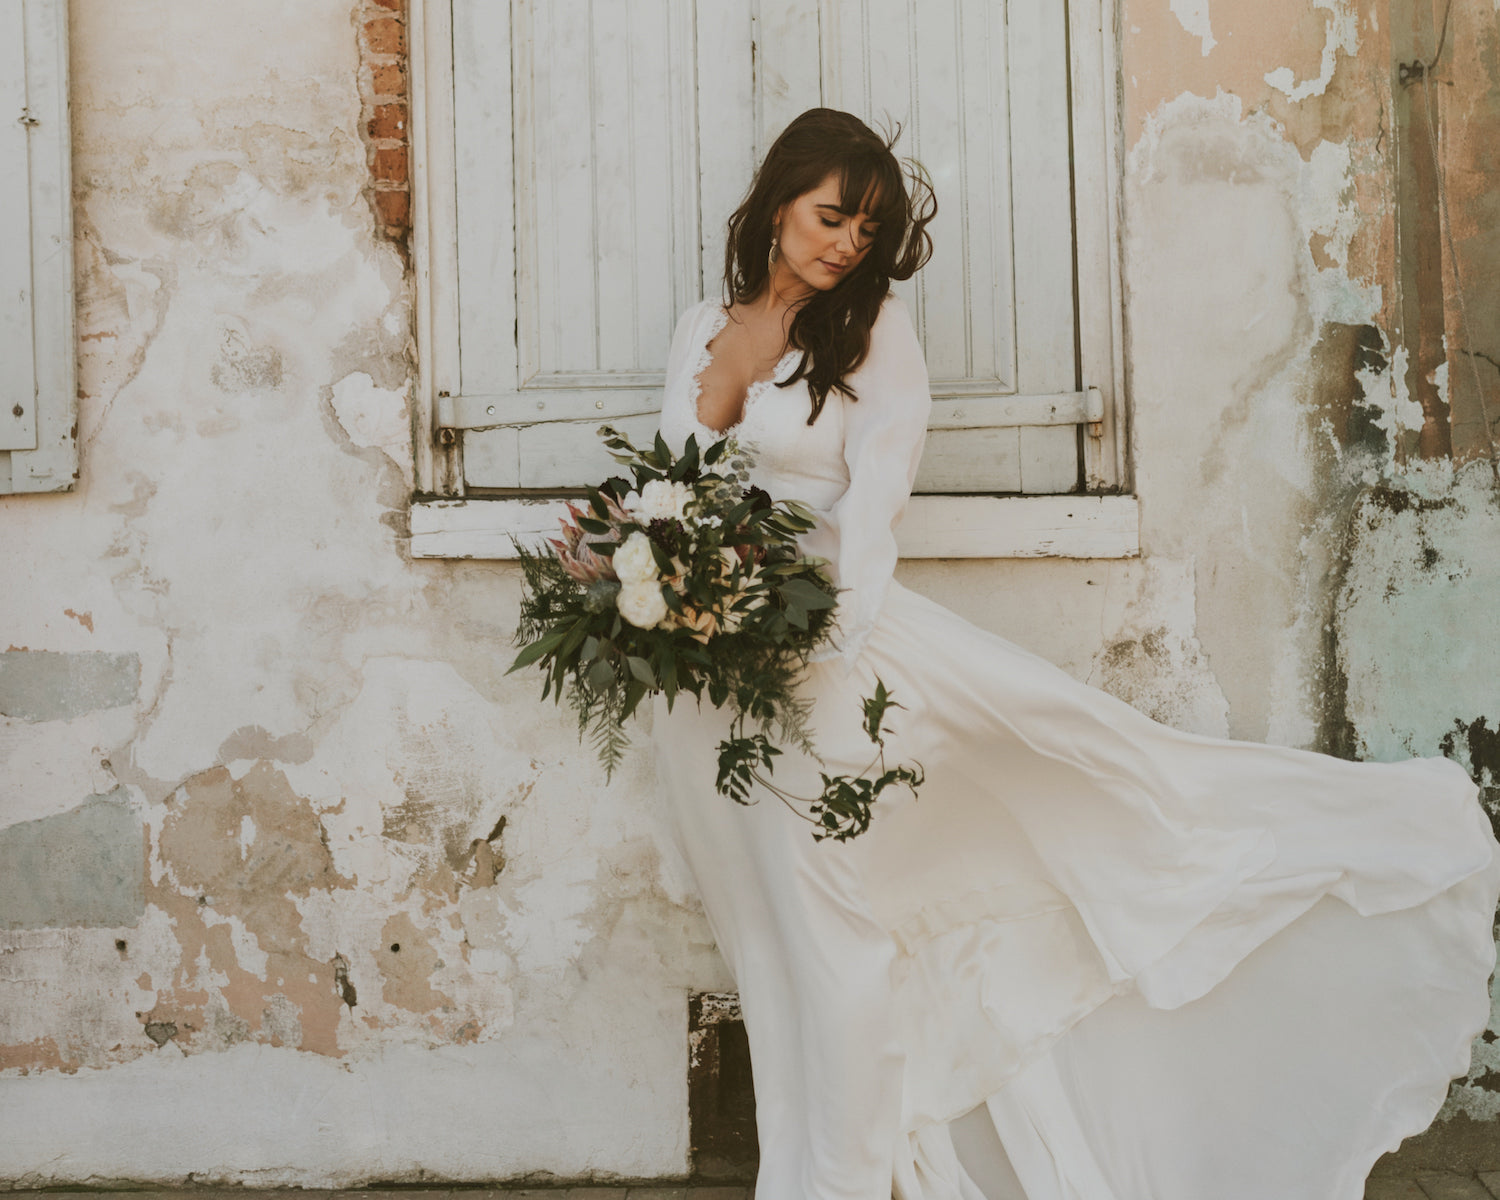 long sleeve leanne Marshall wedding Dress